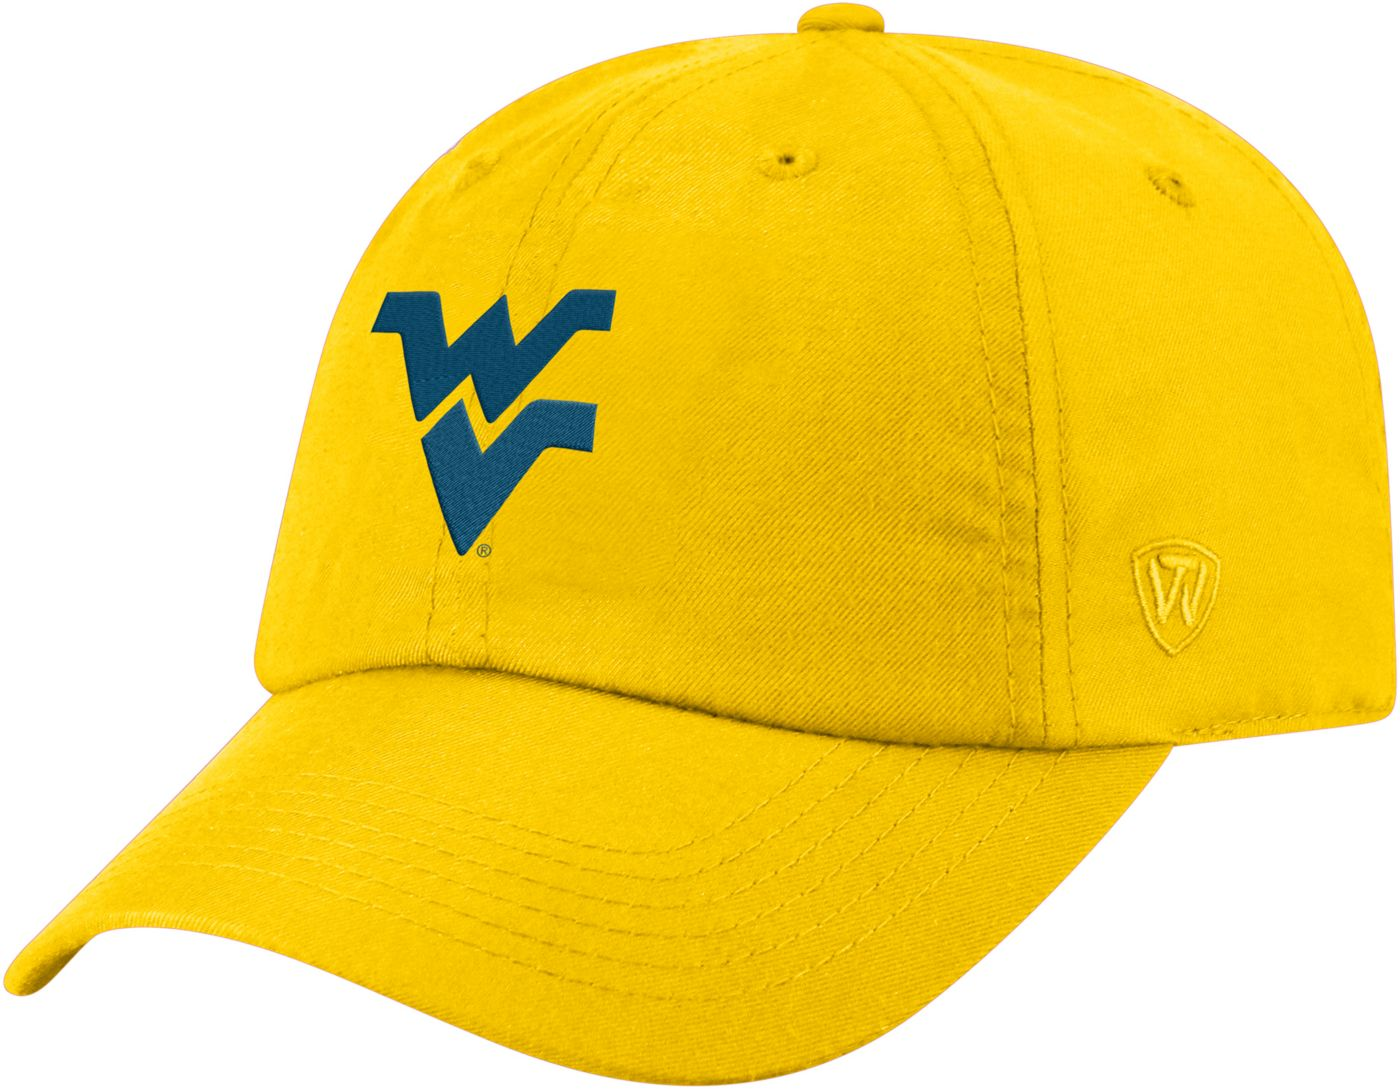 Top of the World Men's West Virginia Mountaineers Gold Staple Adjustable Hat